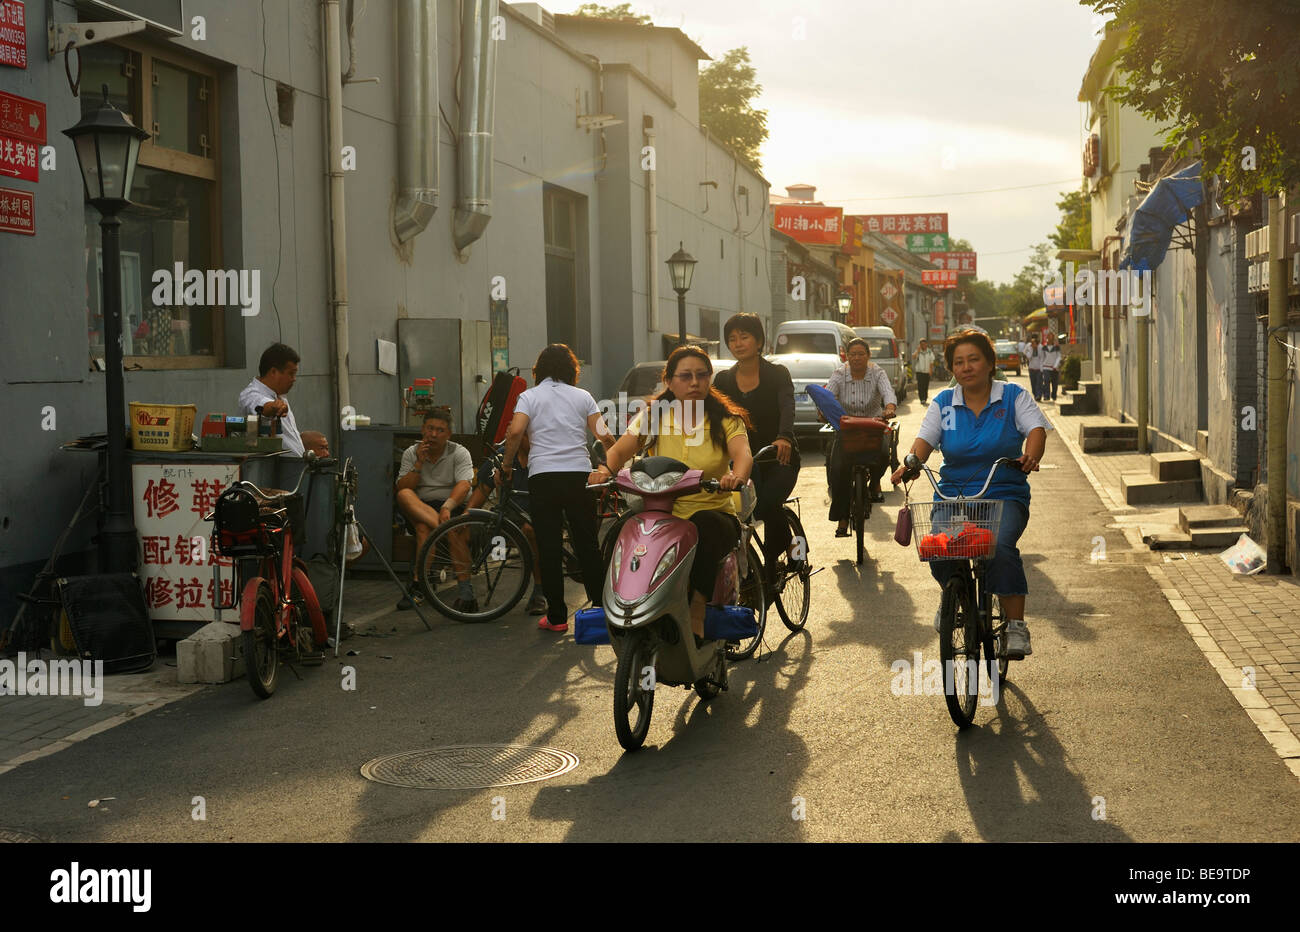 Busy late afternoon Hutong street scene near the Bell Tower - Stock Image